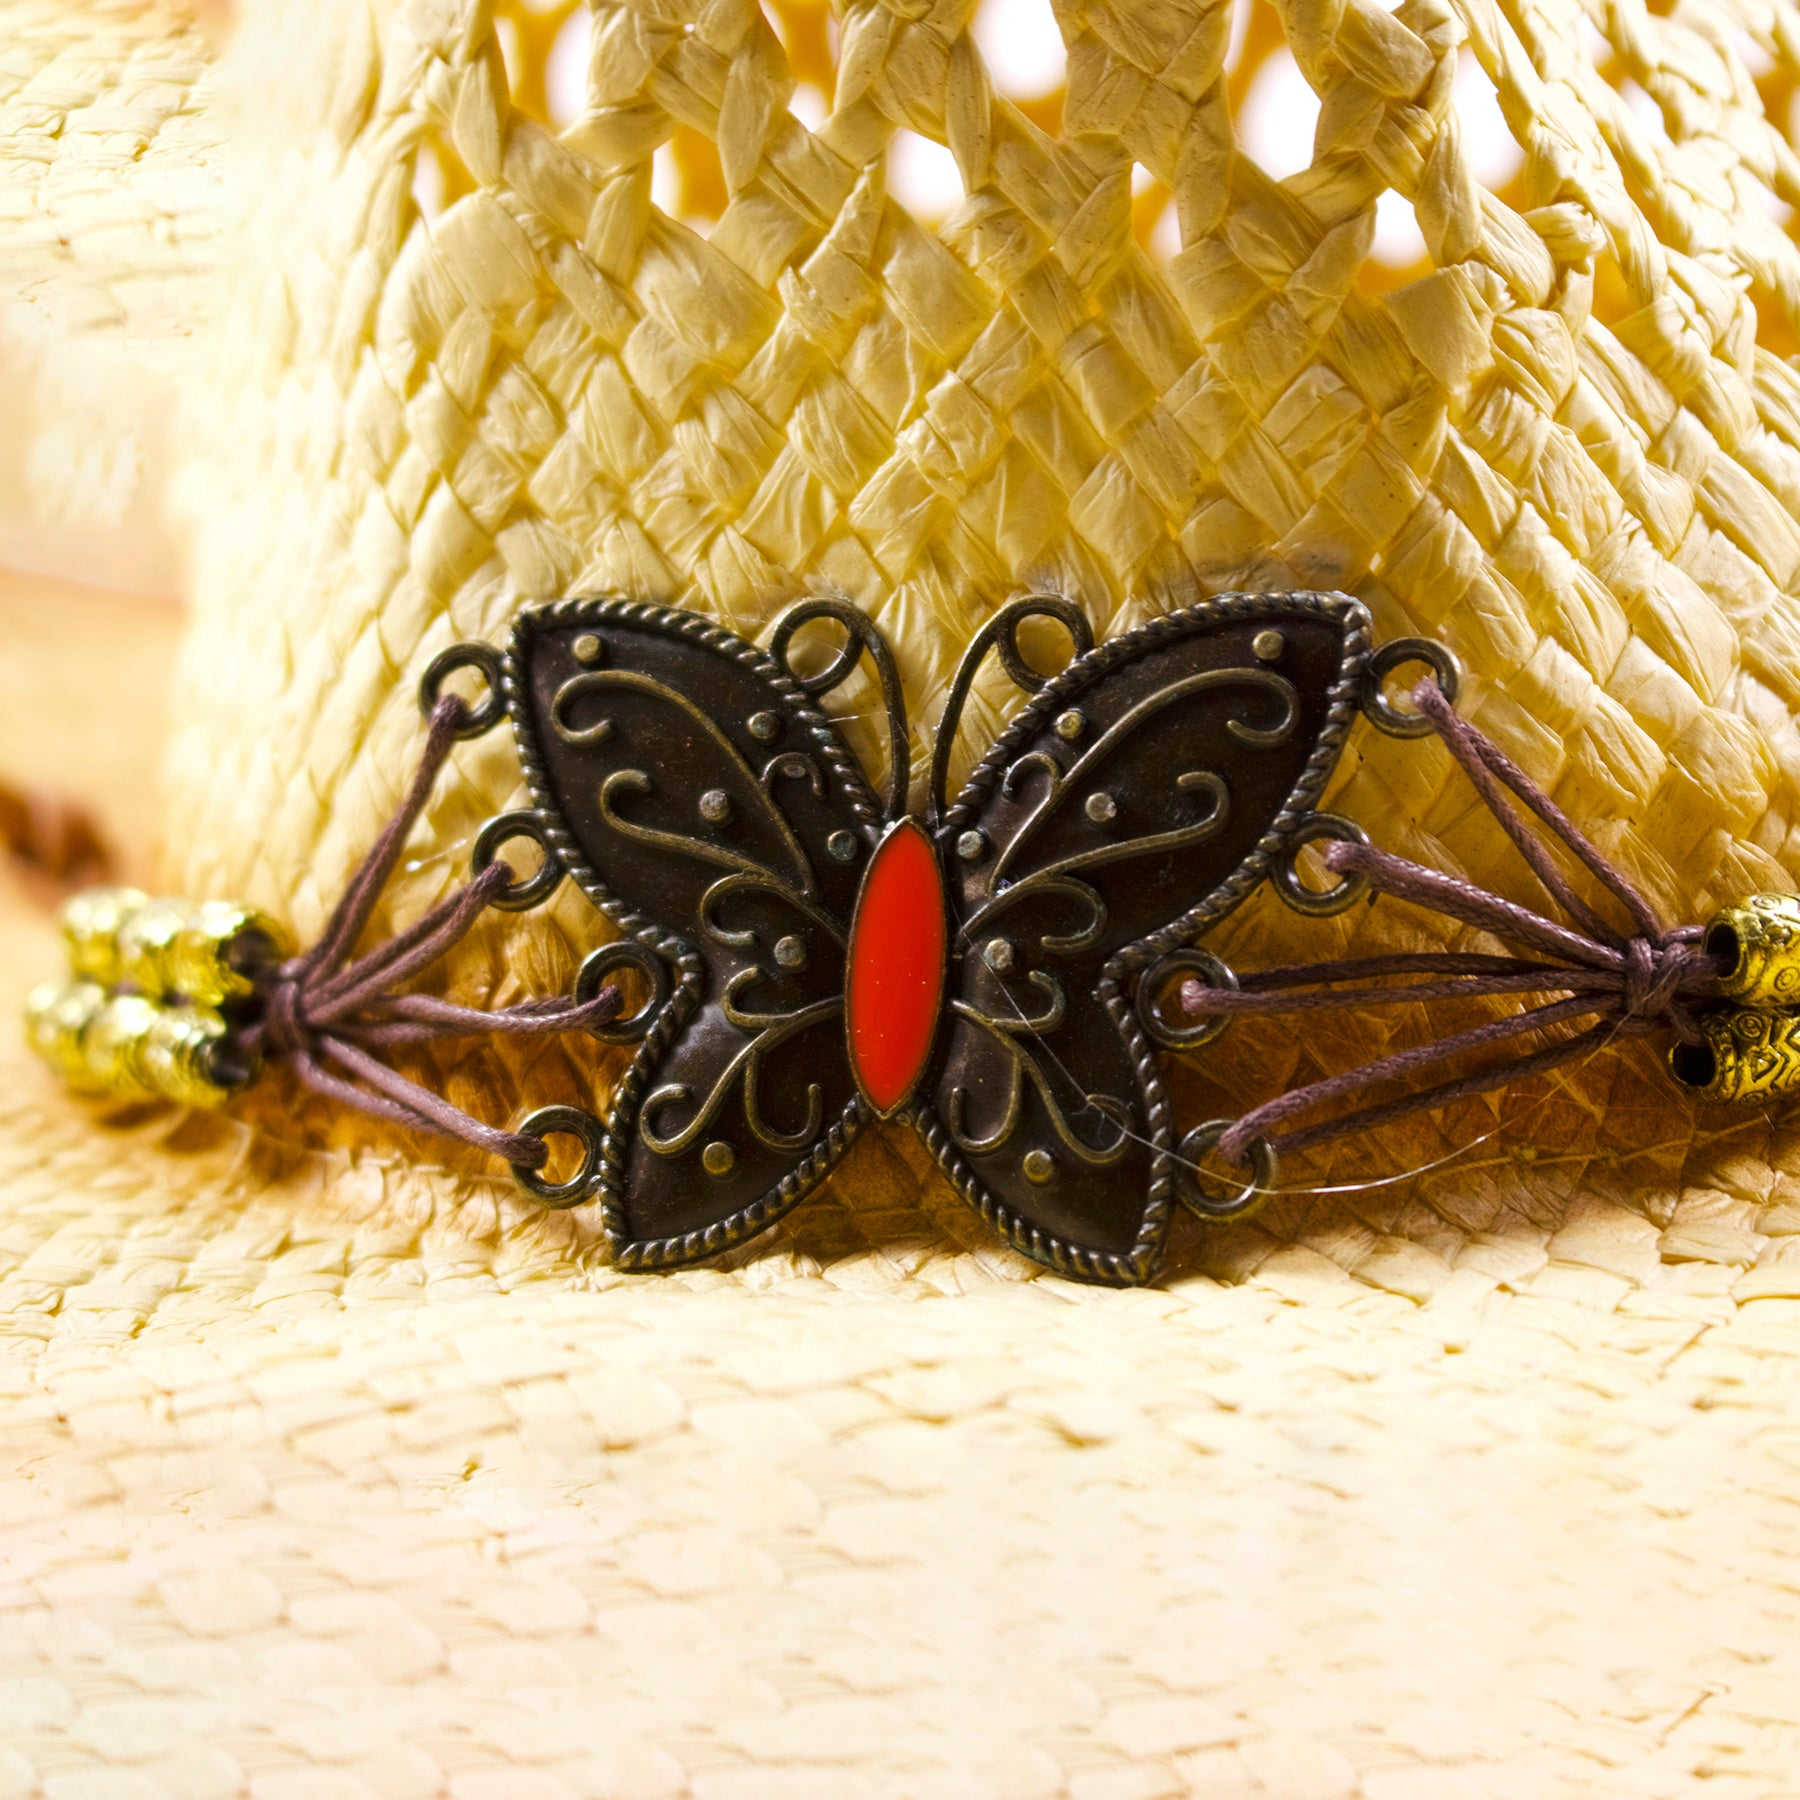 bf82b03567a On the front of the butterfly emblem straw cowboy hat is a metallic  butterfly emblem attached  the metallic butterfly emblem has metallic and  orange ...